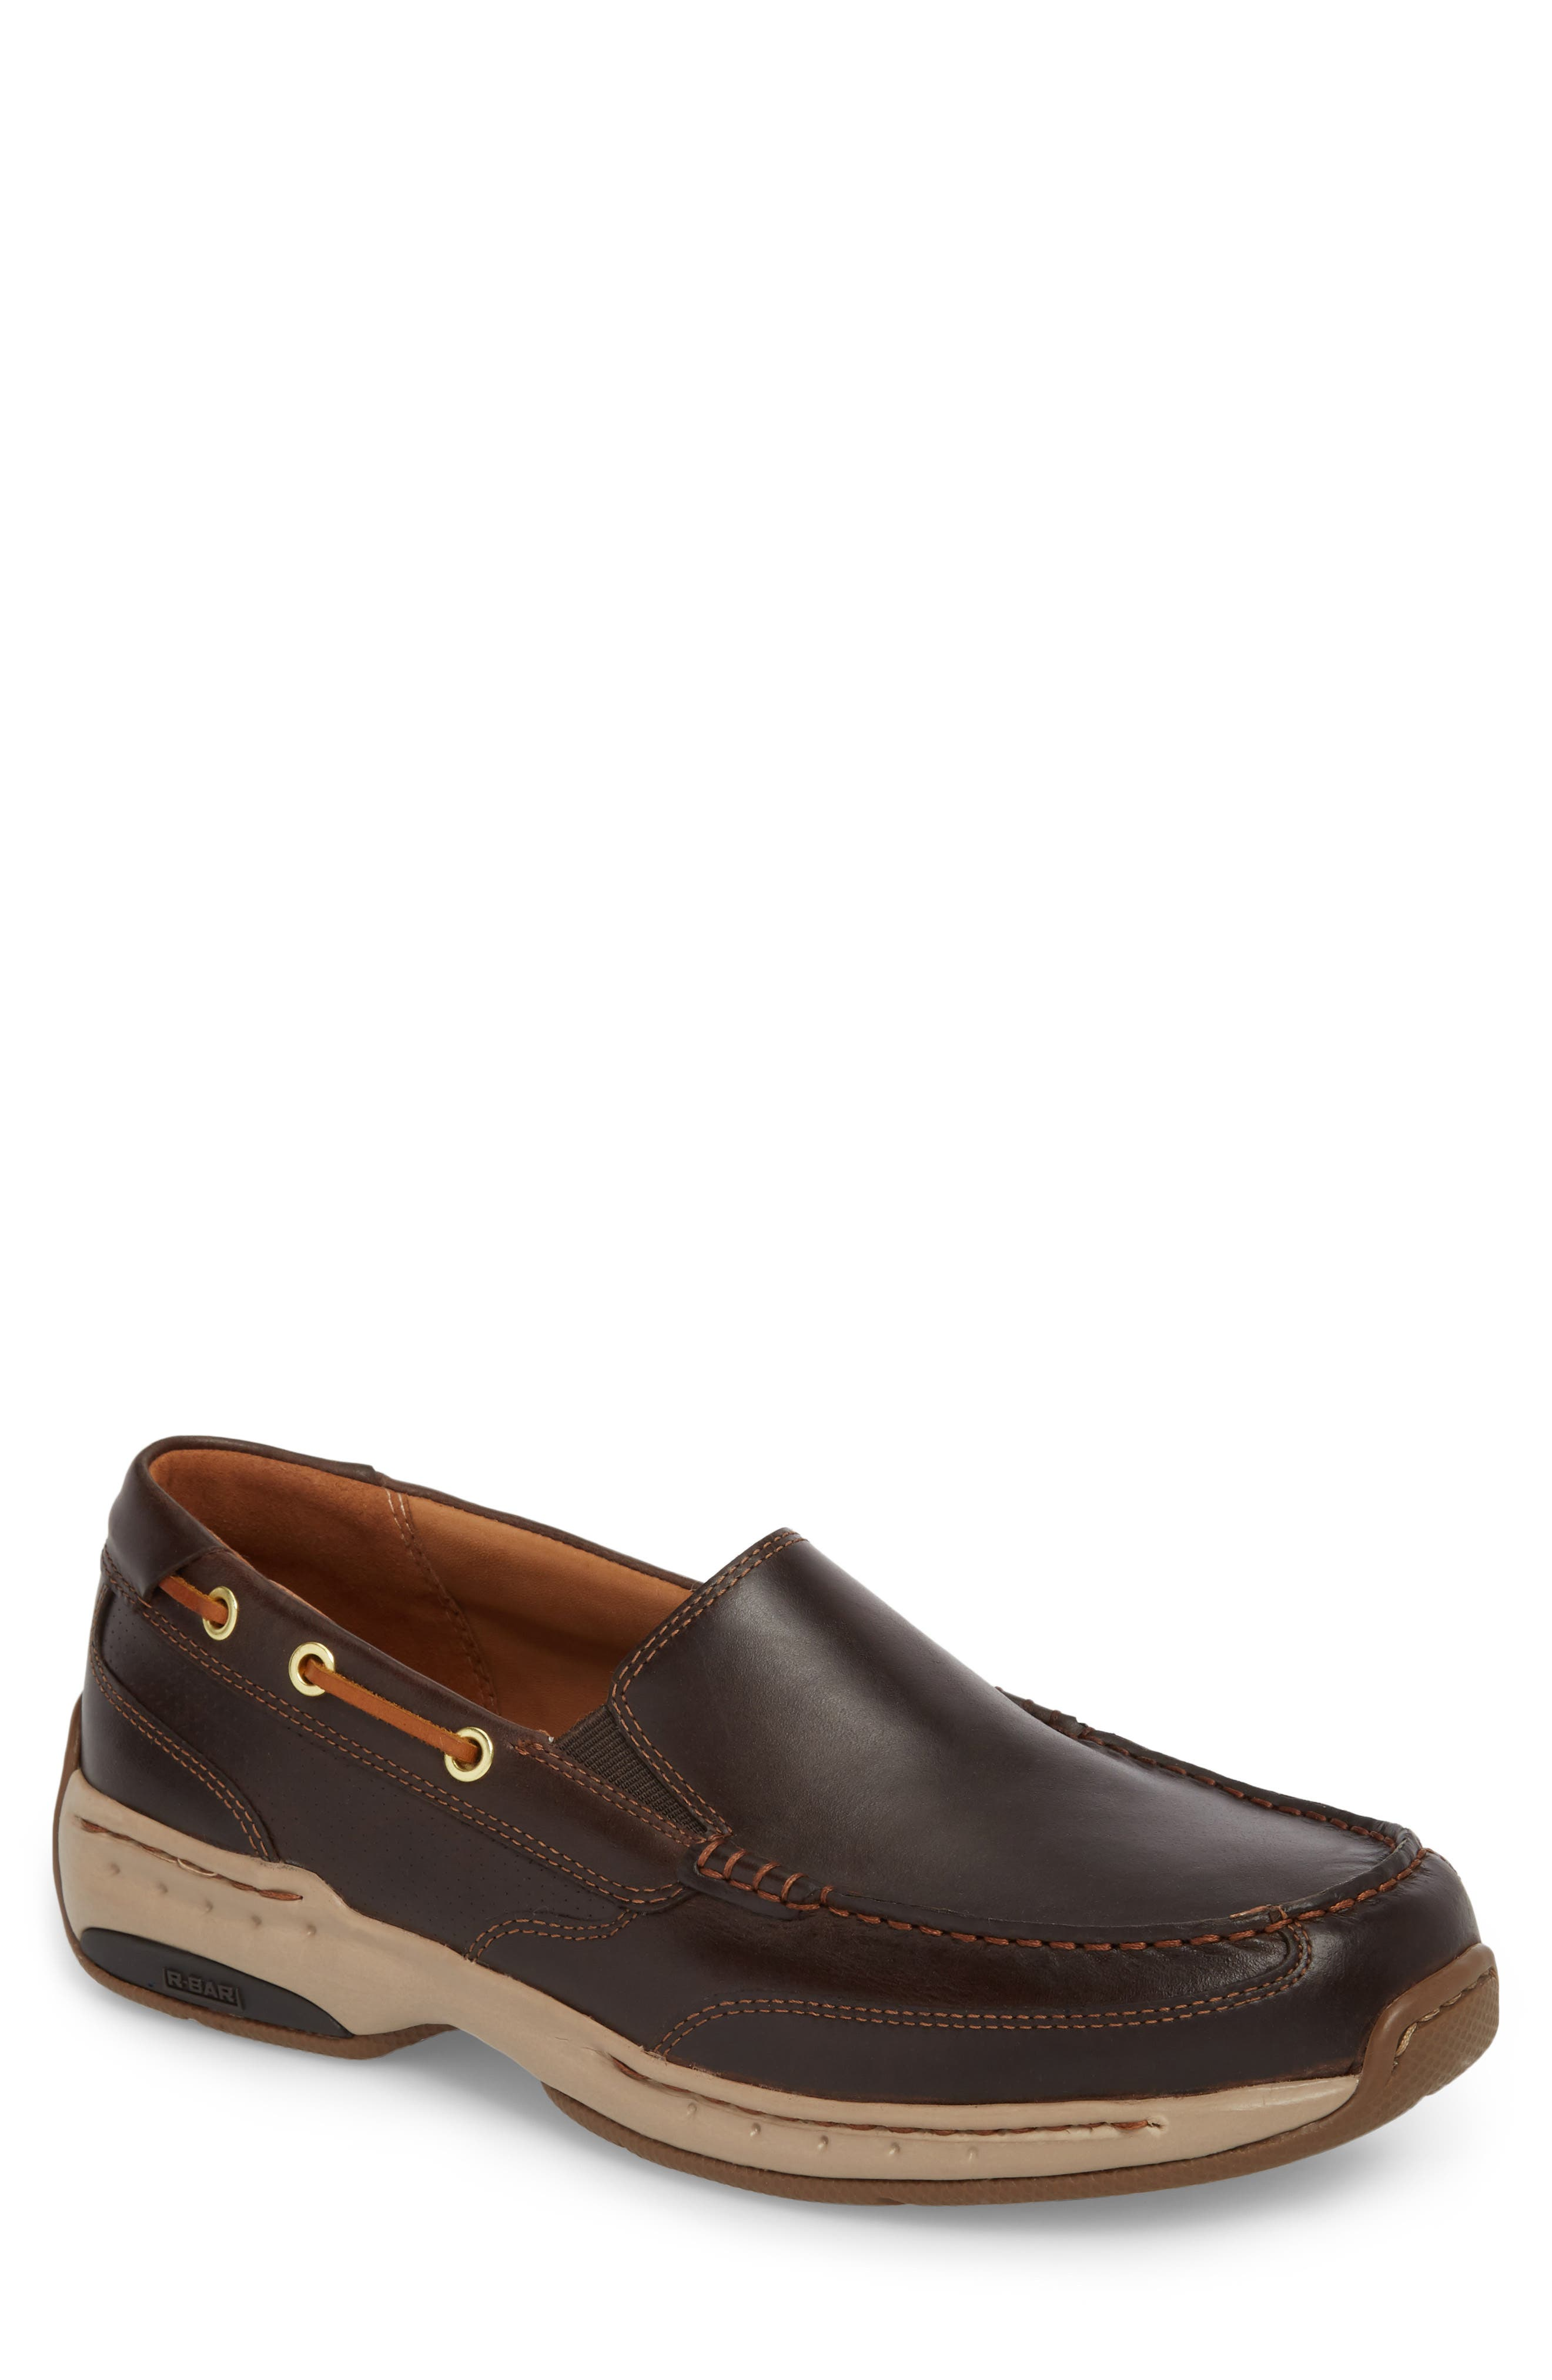 DUNHAM, Waterford Water Resistant Slip-On, Main thumbnail 1, color, TAN LEATHER